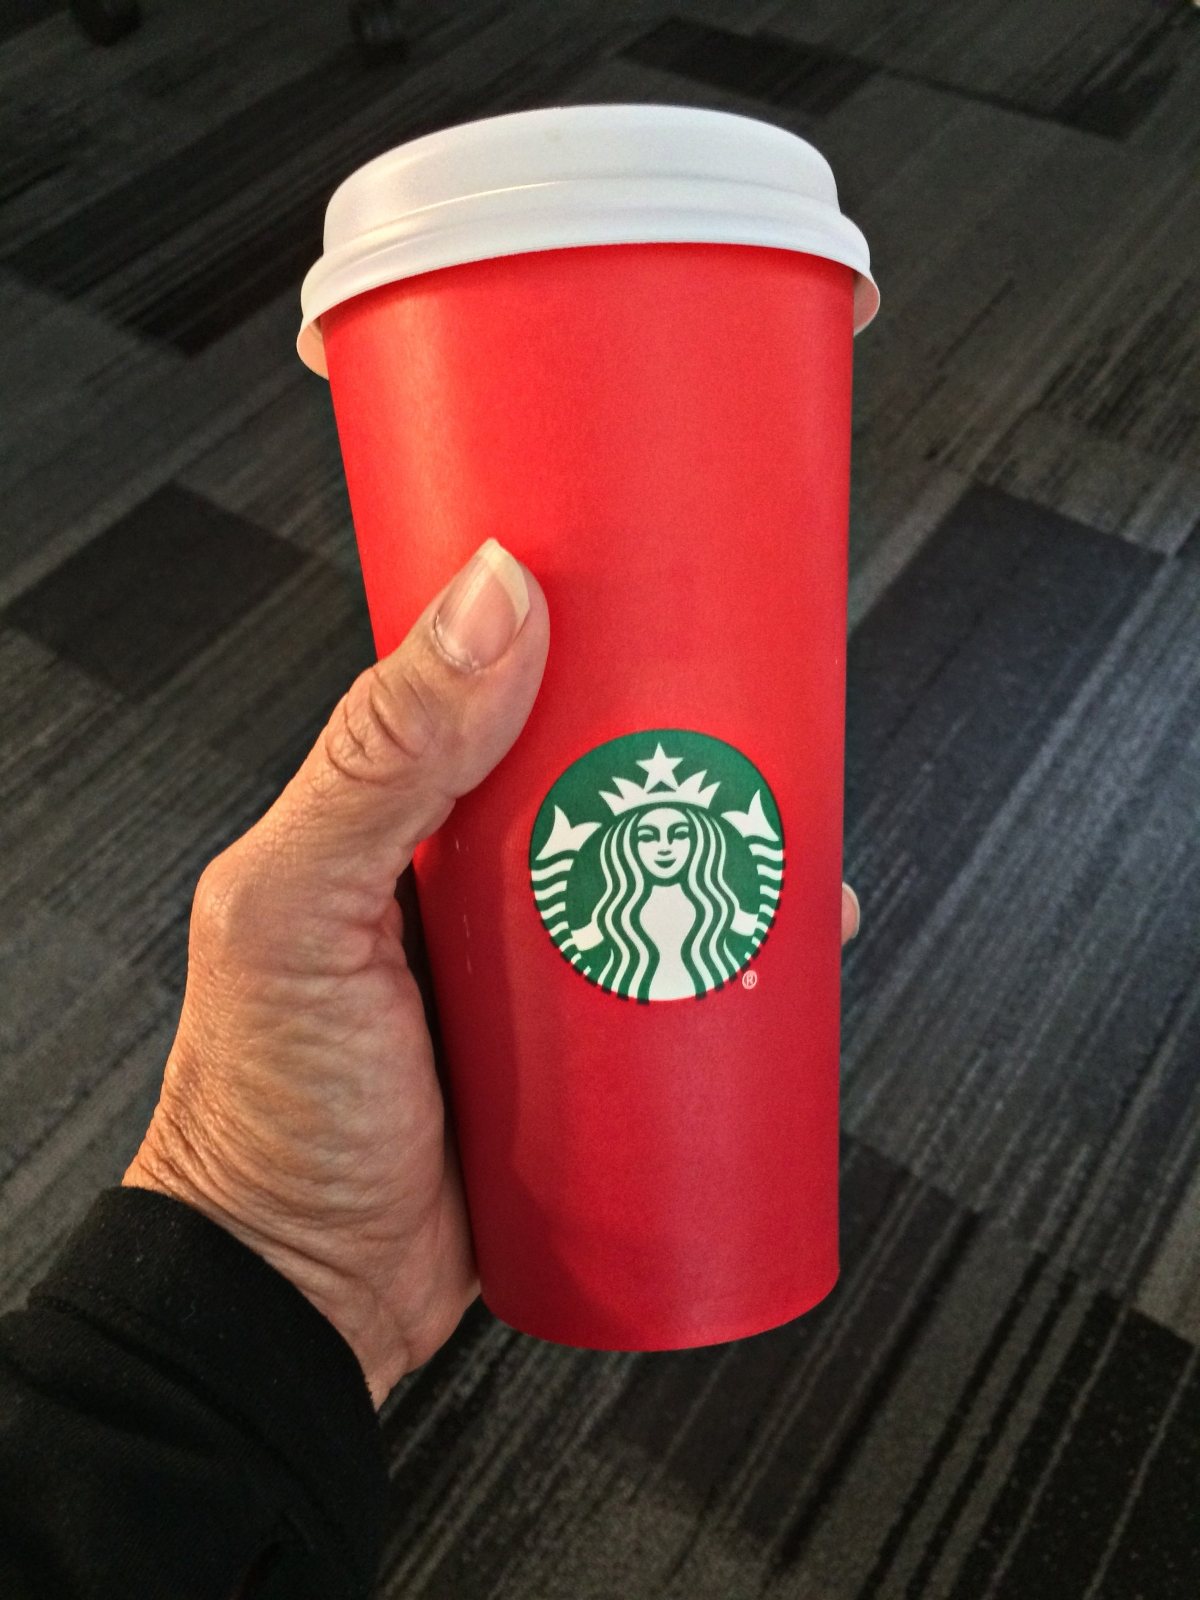 war on christmas starbucks customers  plain about red